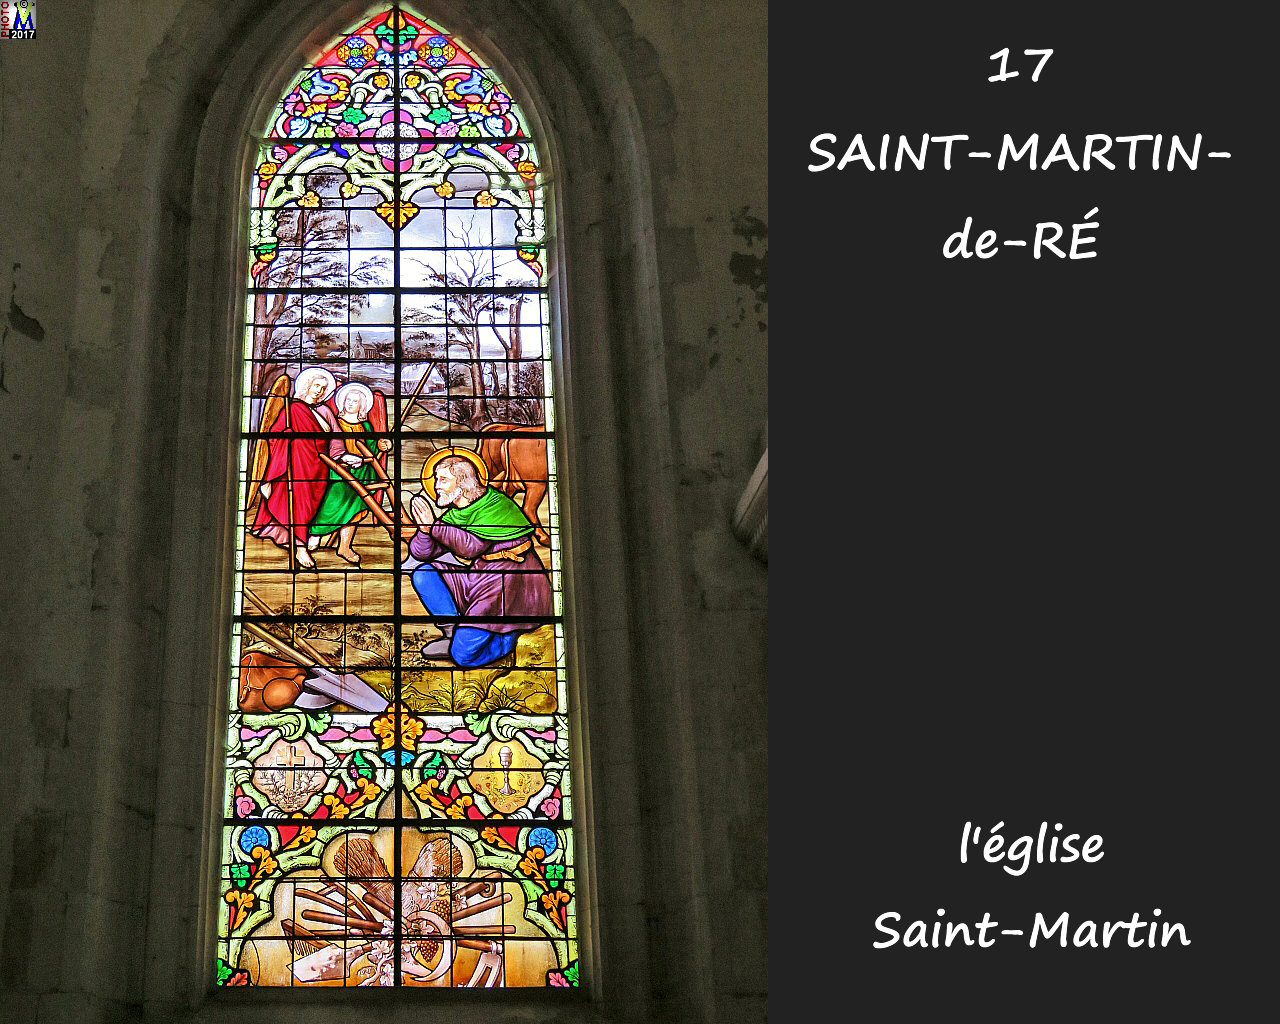 17StMARTIN-RE_eglise_1110.jpg